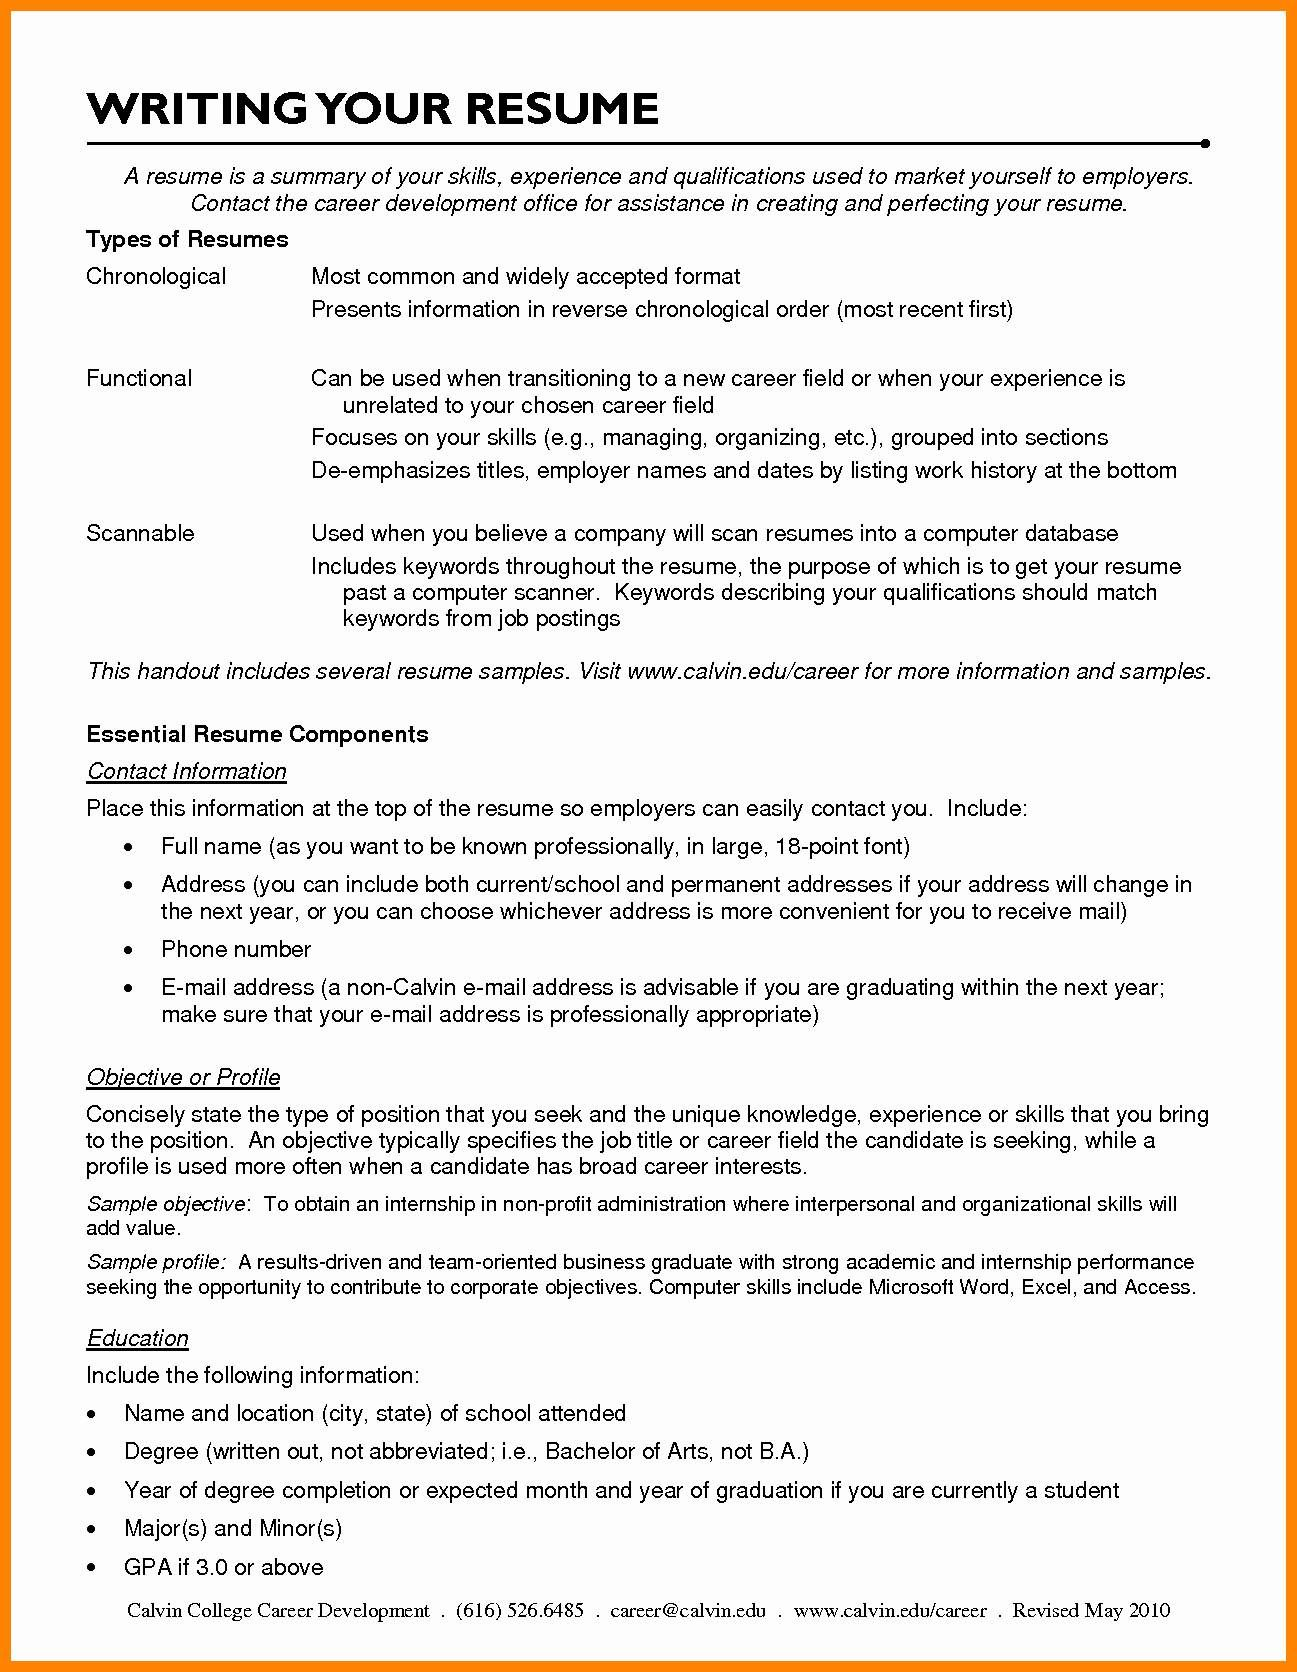 Resume Types For Openoffice 4  Resume Templates  Pinterest  Template